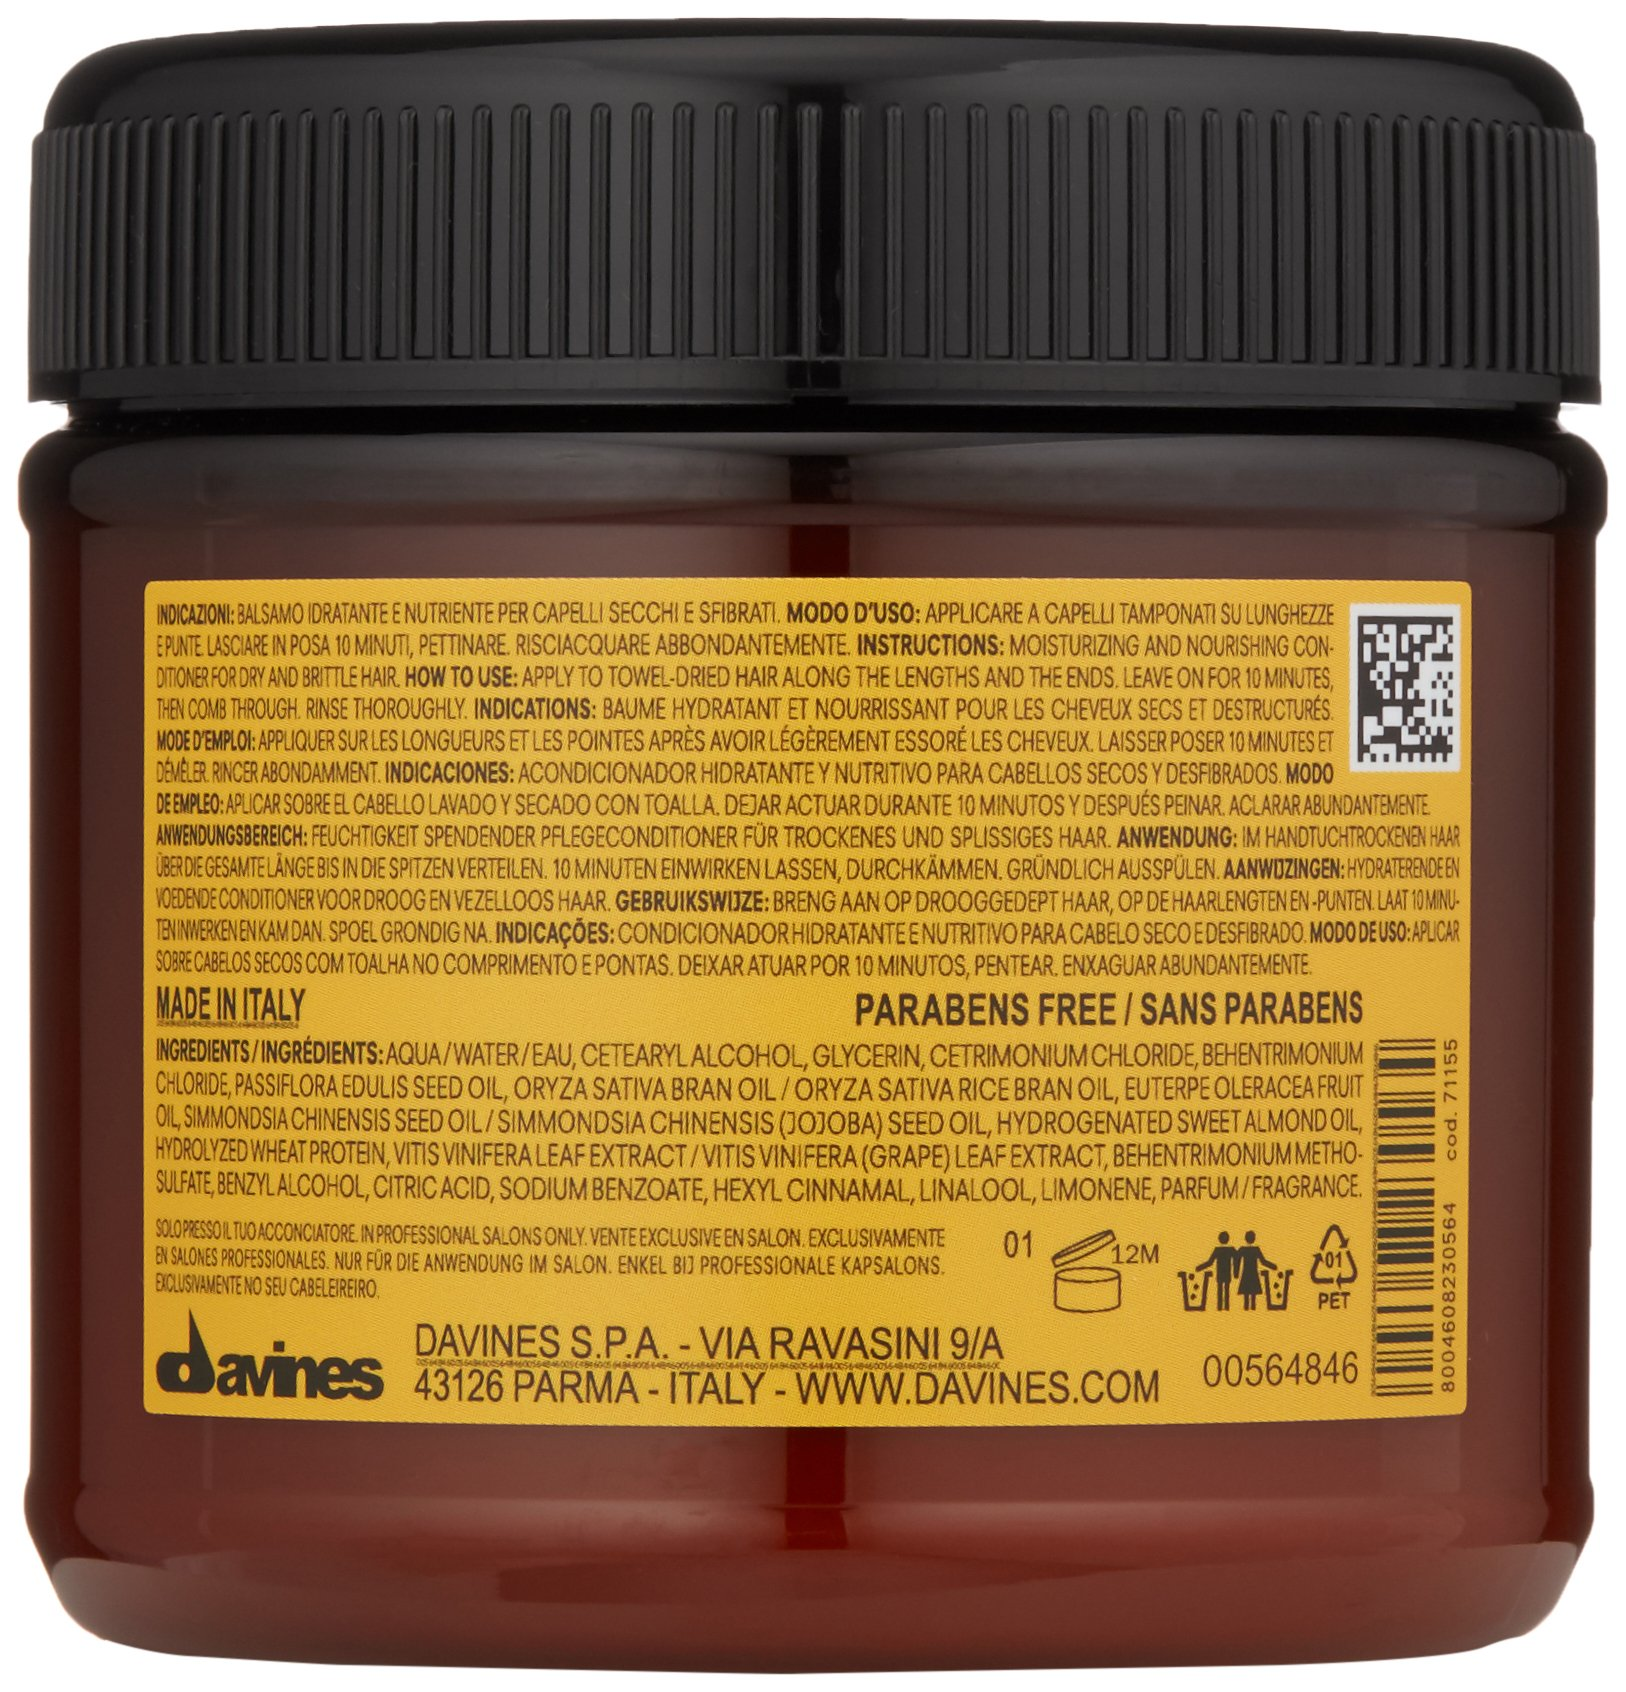 Davines Vegetarian Miracle Conditioner, 8.77 oz by Davines (Image #2)